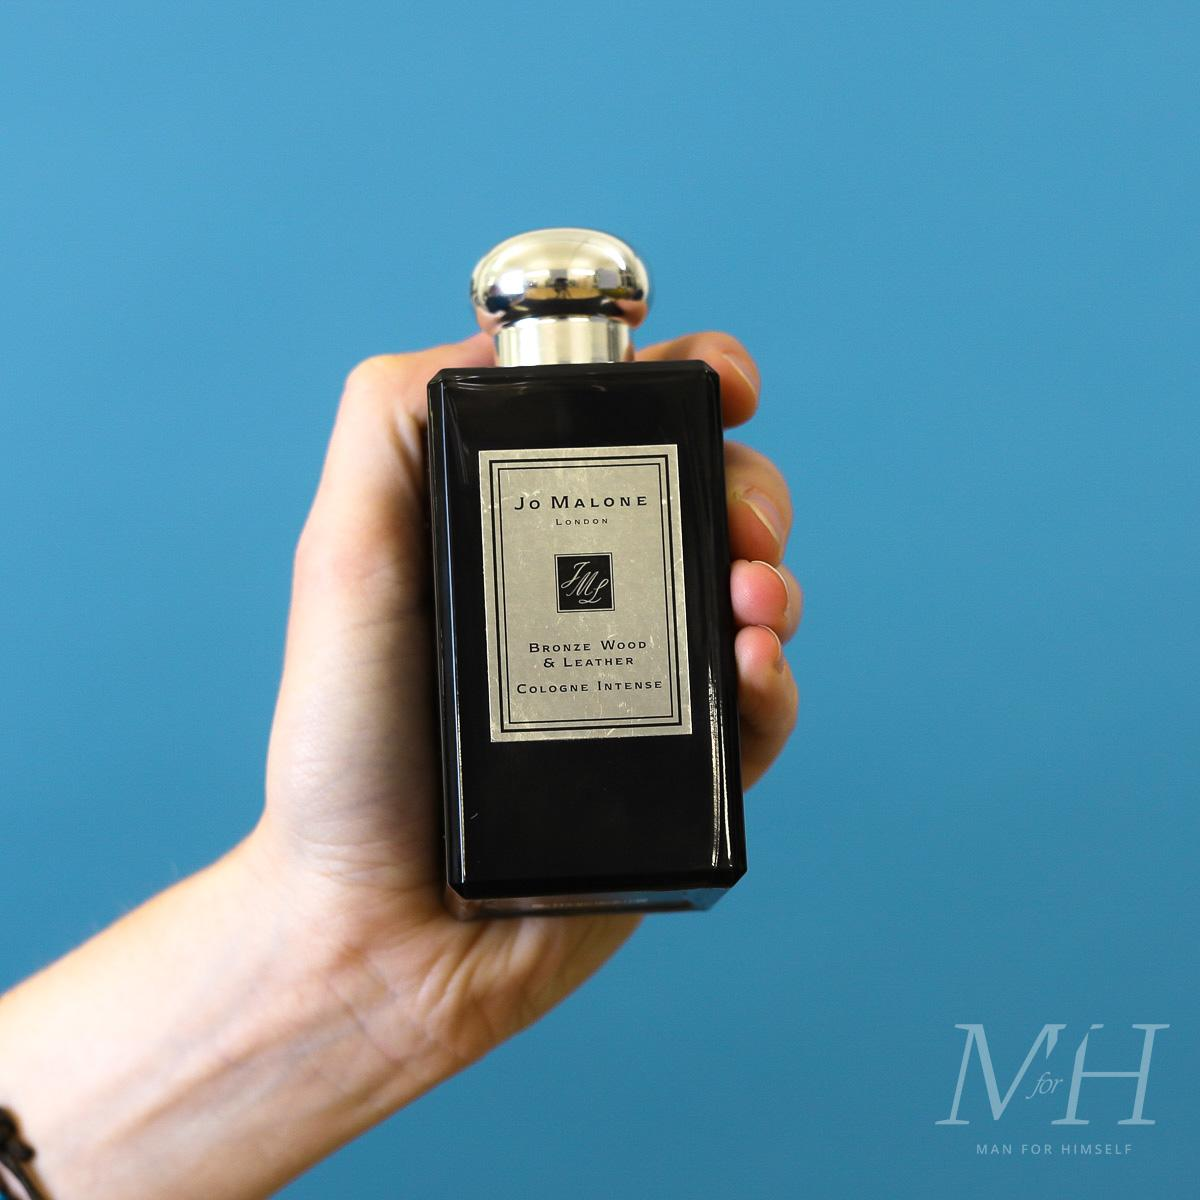 jo-malone-bronze-wood-leather-fragrance-product-review-man-for-himself